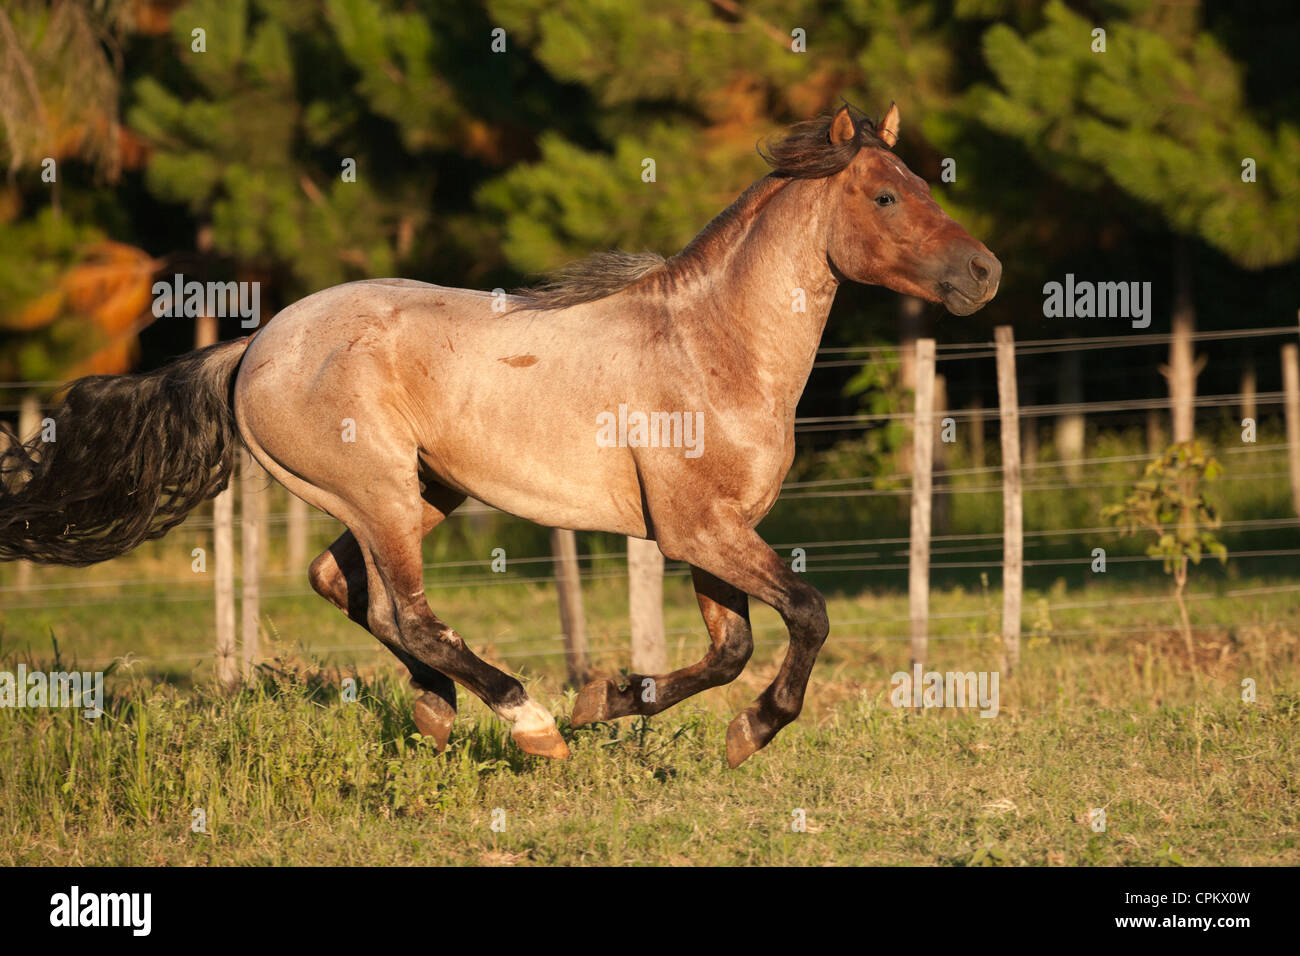 Criollo horses wild feral cowboy South America - Stock Image